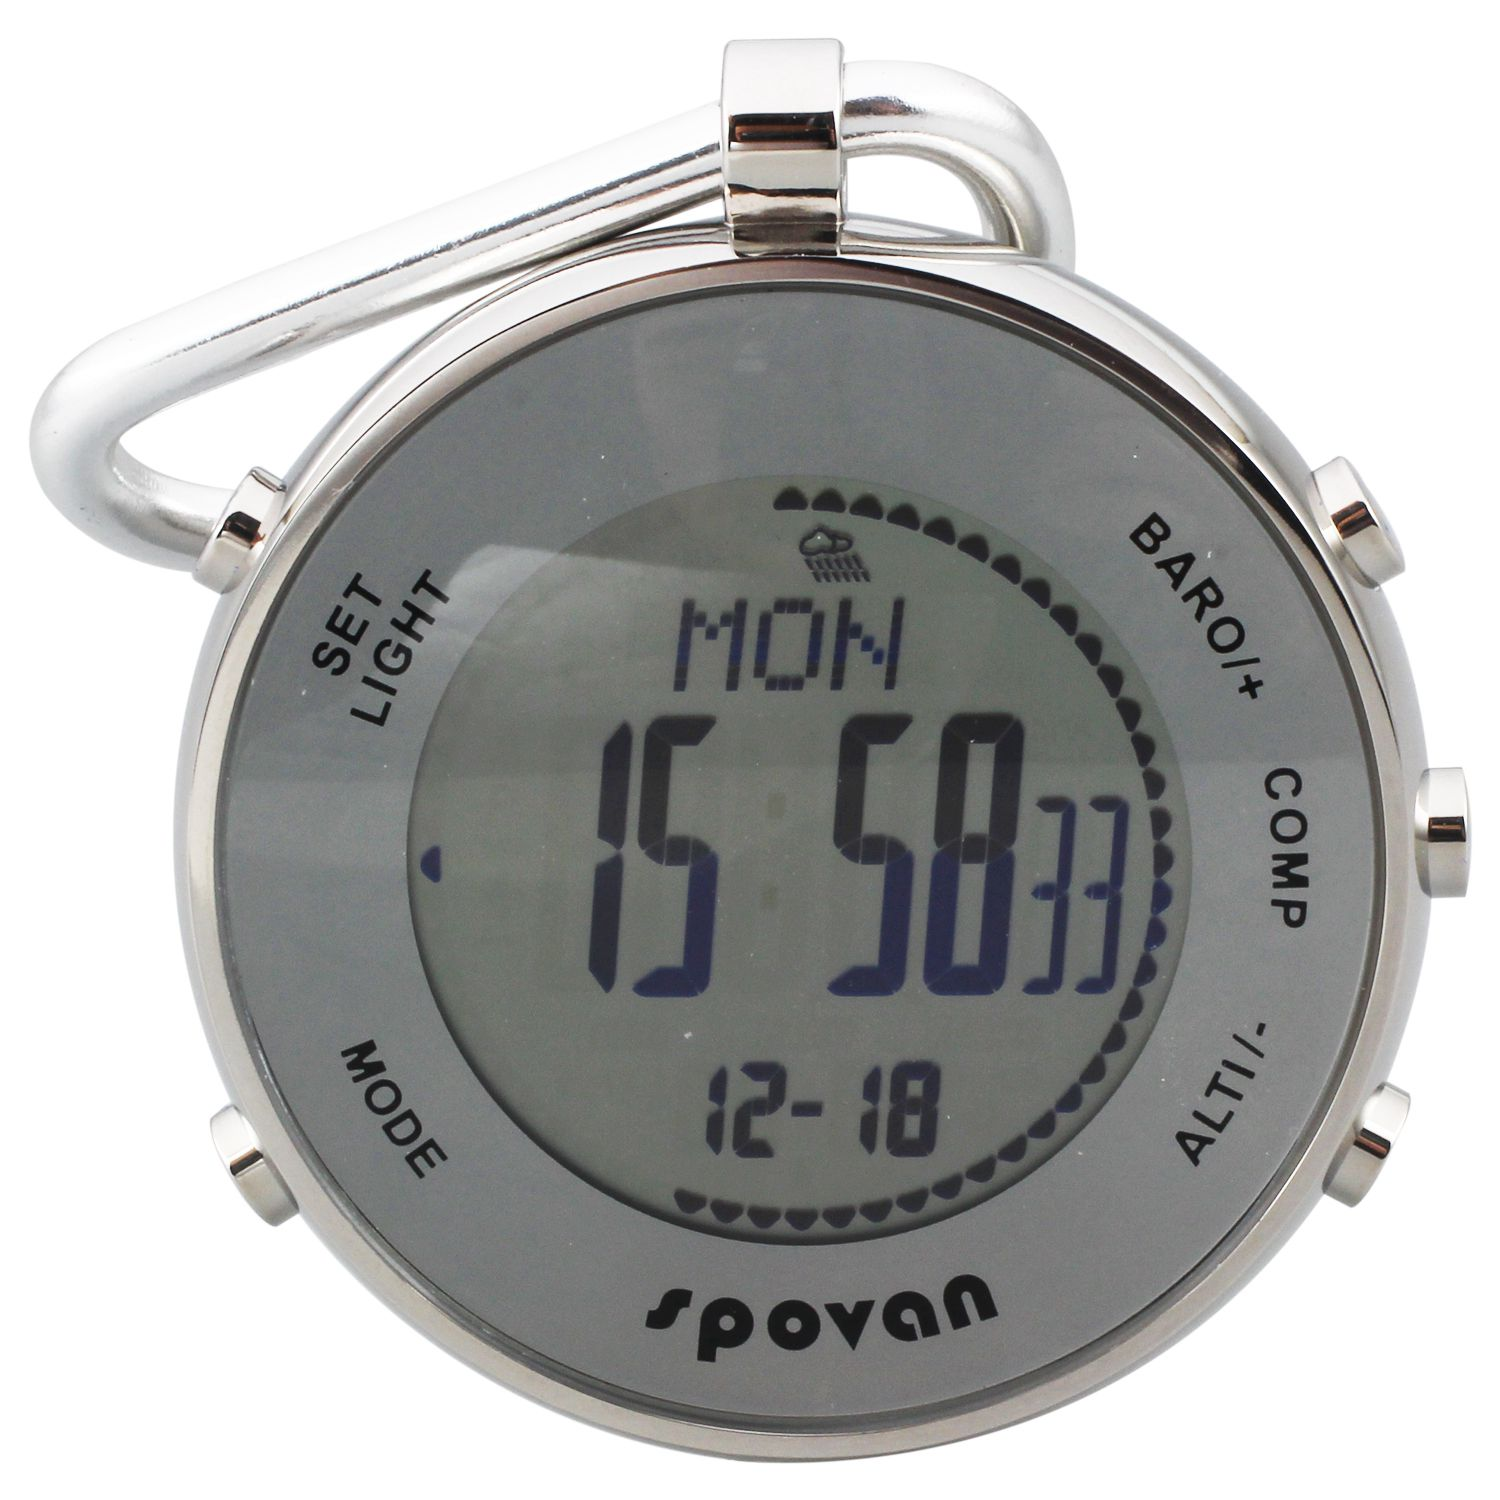 FUNN-spovan White Multifunctional Outdoor Sport Pocket Watch with Altimeter/Barometer/Thermometer/Weather Forecast/Stopwatch/C